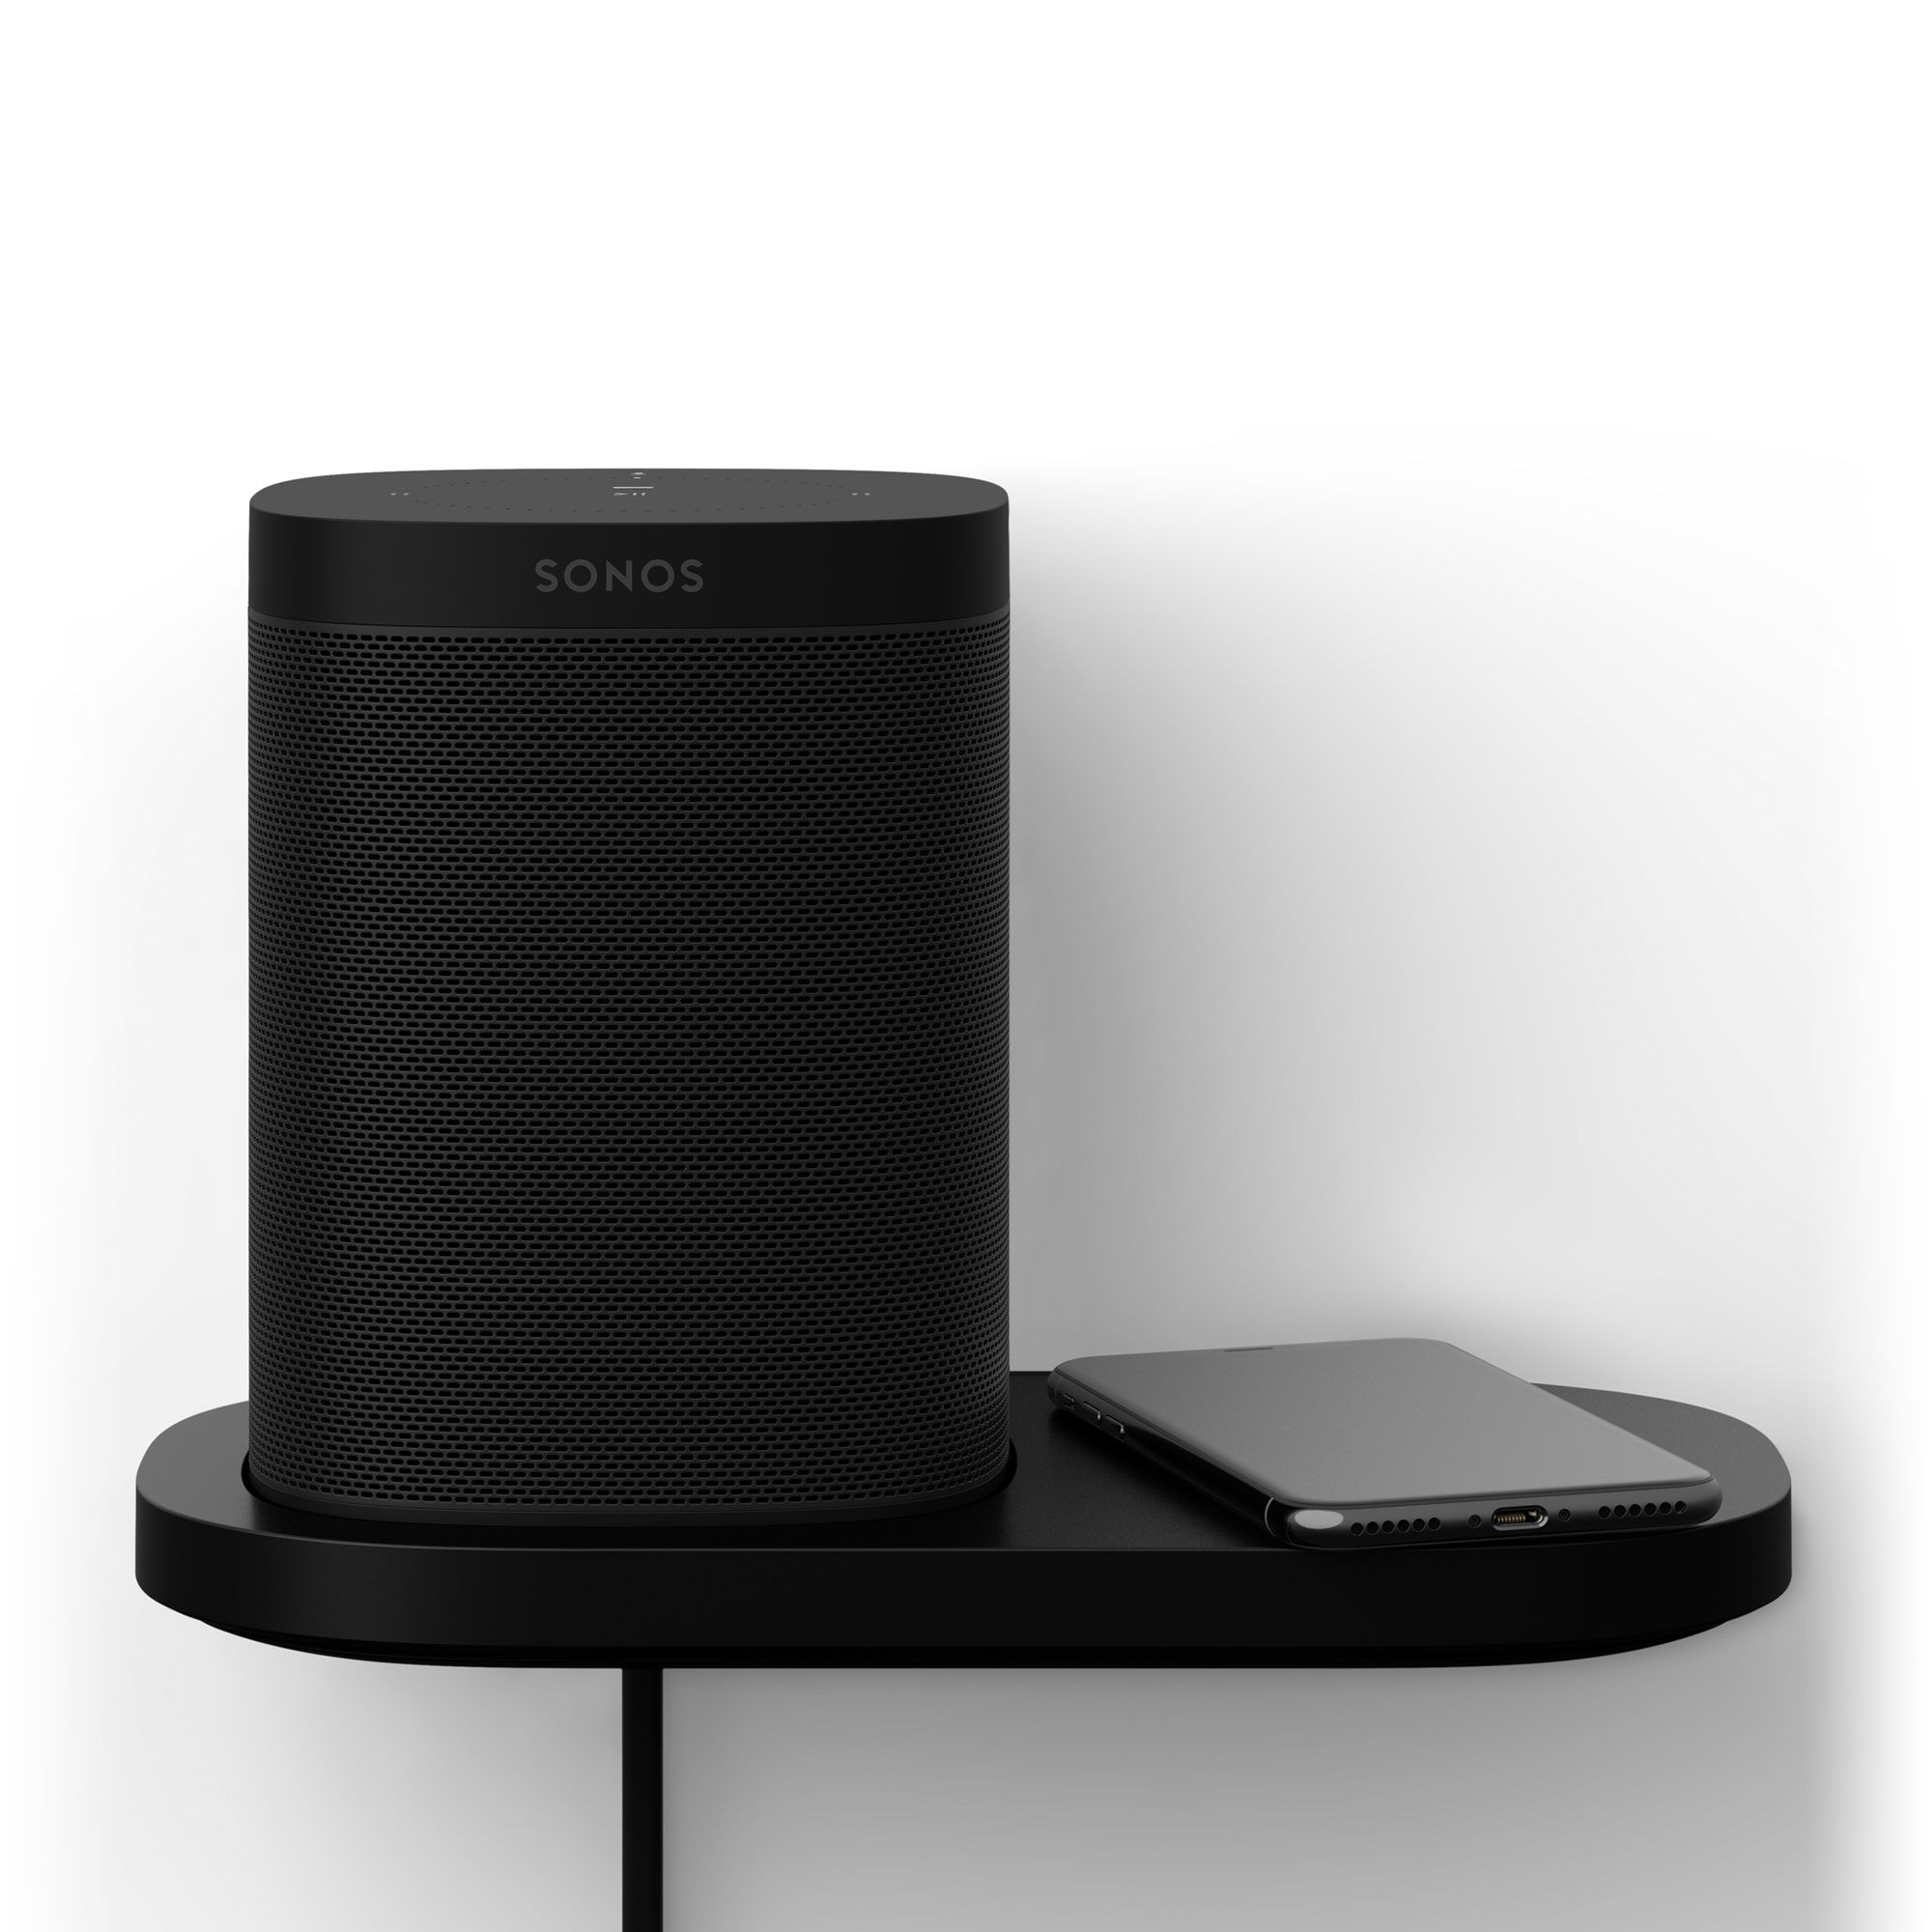 Sonos Shelf Fur Den One Und One Sl Sonos Regal Sonos Sparen